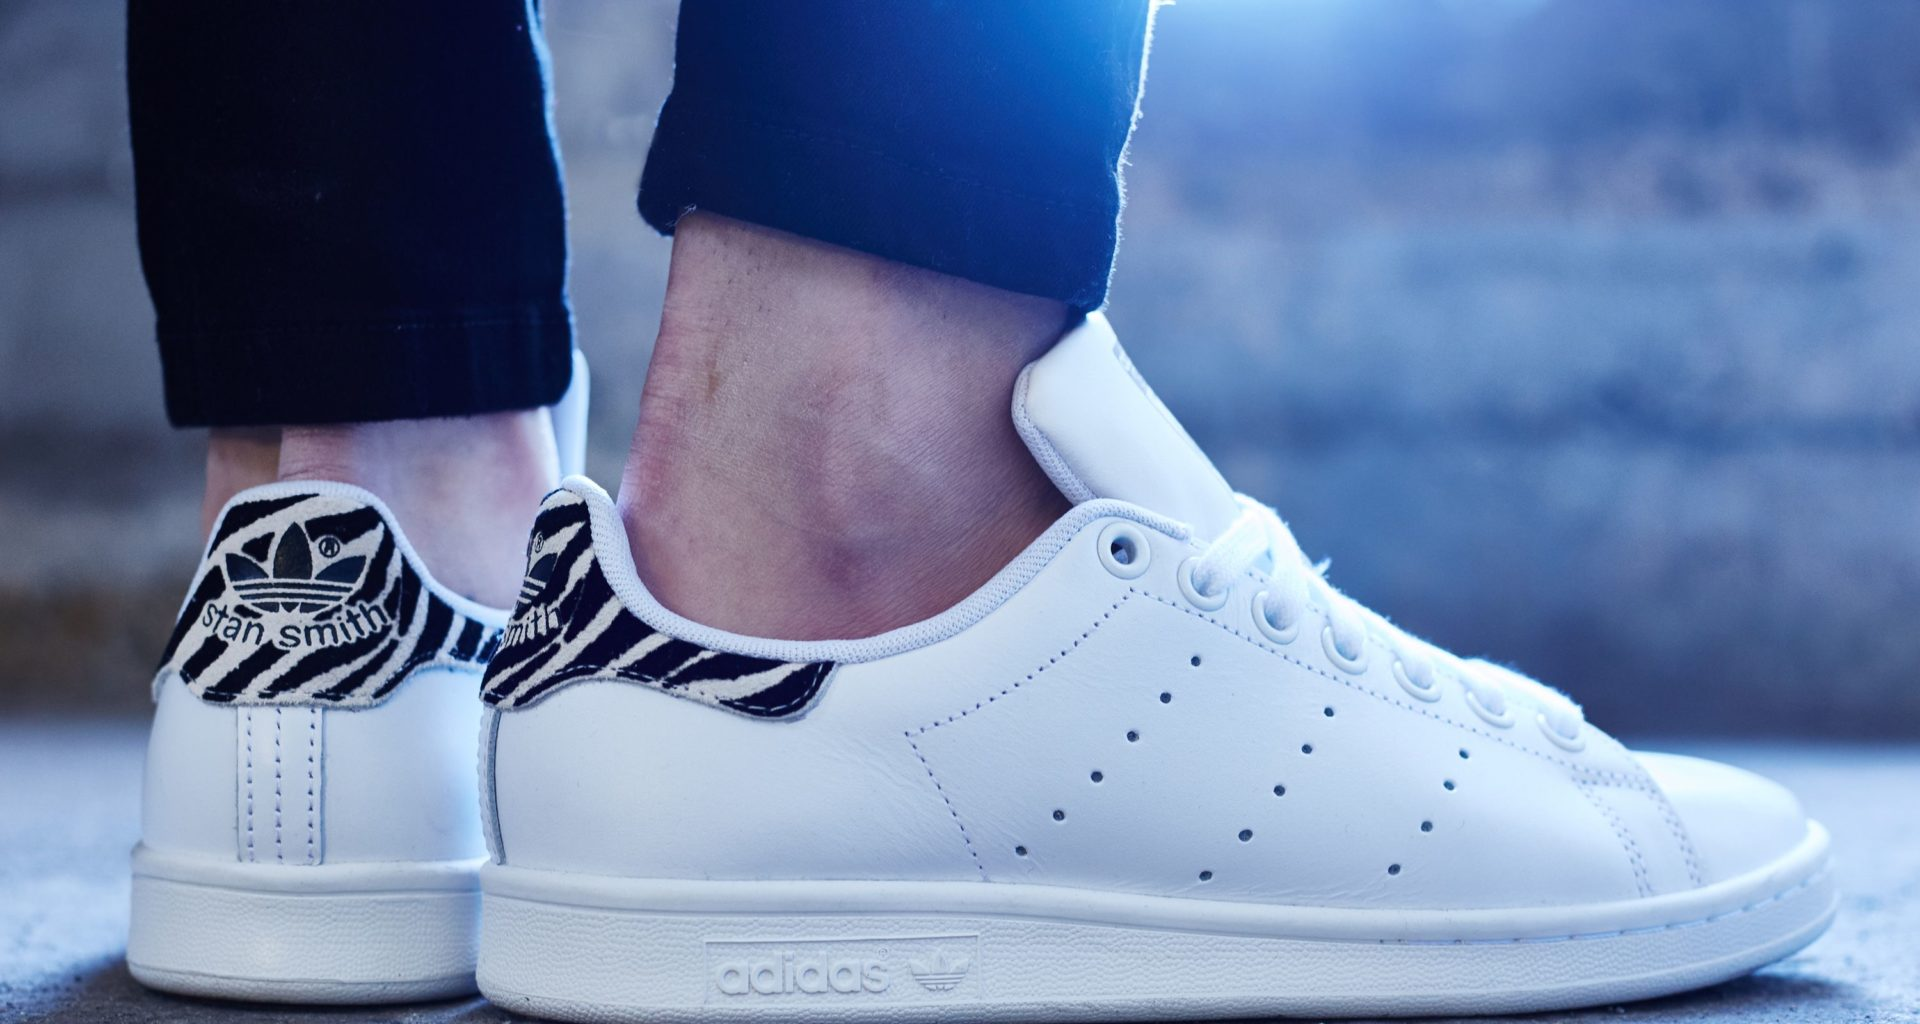 Style, Comfort and Protection All in One - Stan Smith Shoes